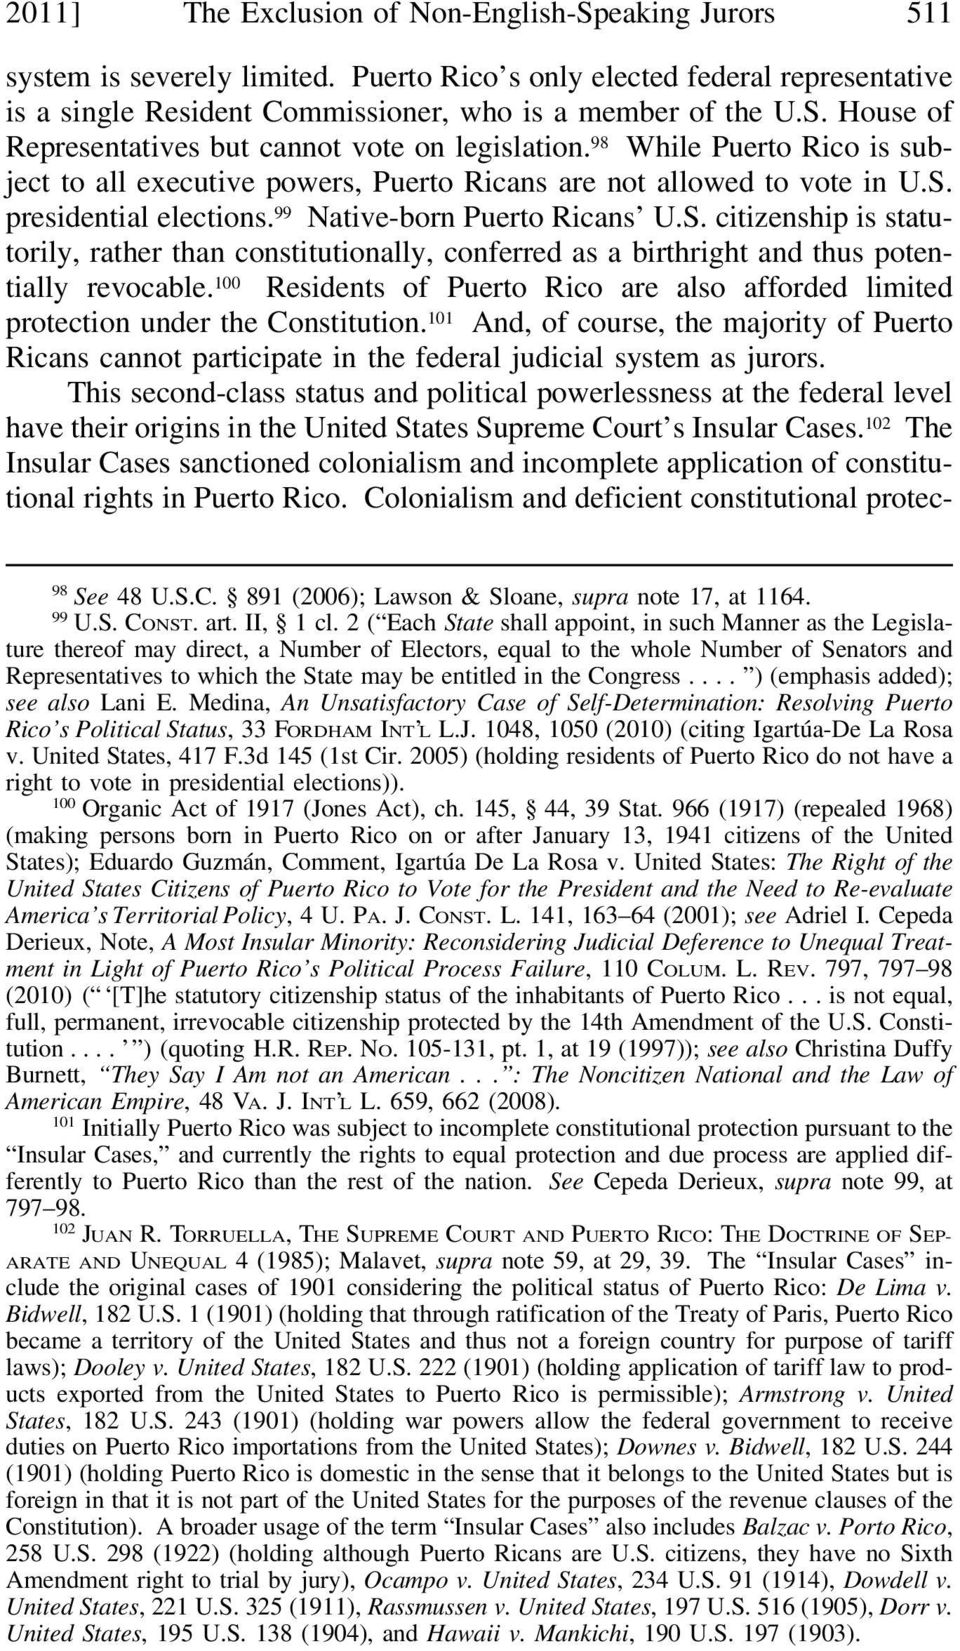 presidential elections. 99 Native-born Puerto Ricans U.S. citizenship is statutorily, rather than constitutionally, conferred as a birthright and thus potentially revocable.